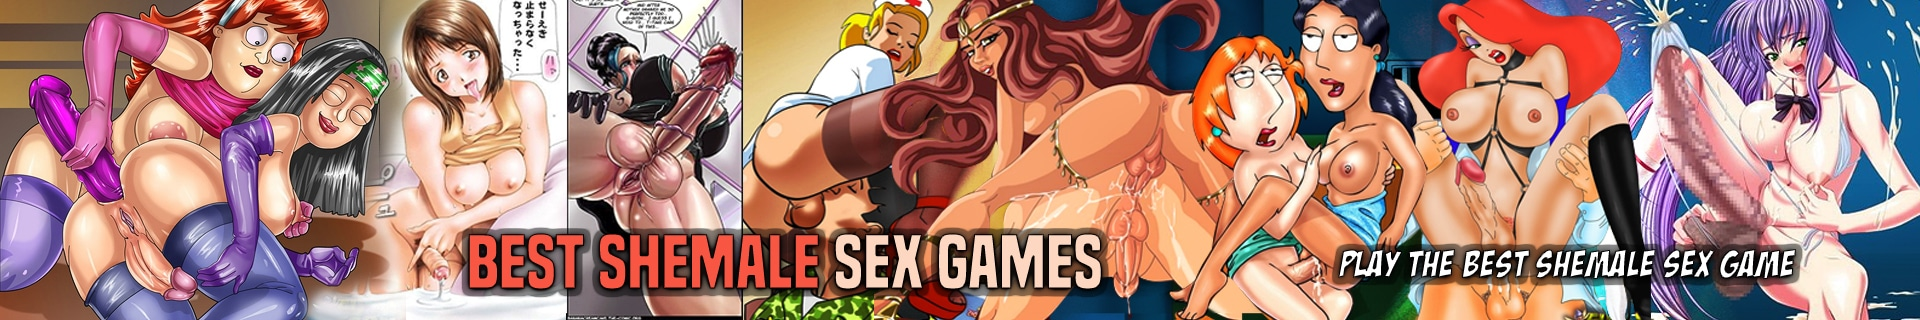 Shemale Sex Games